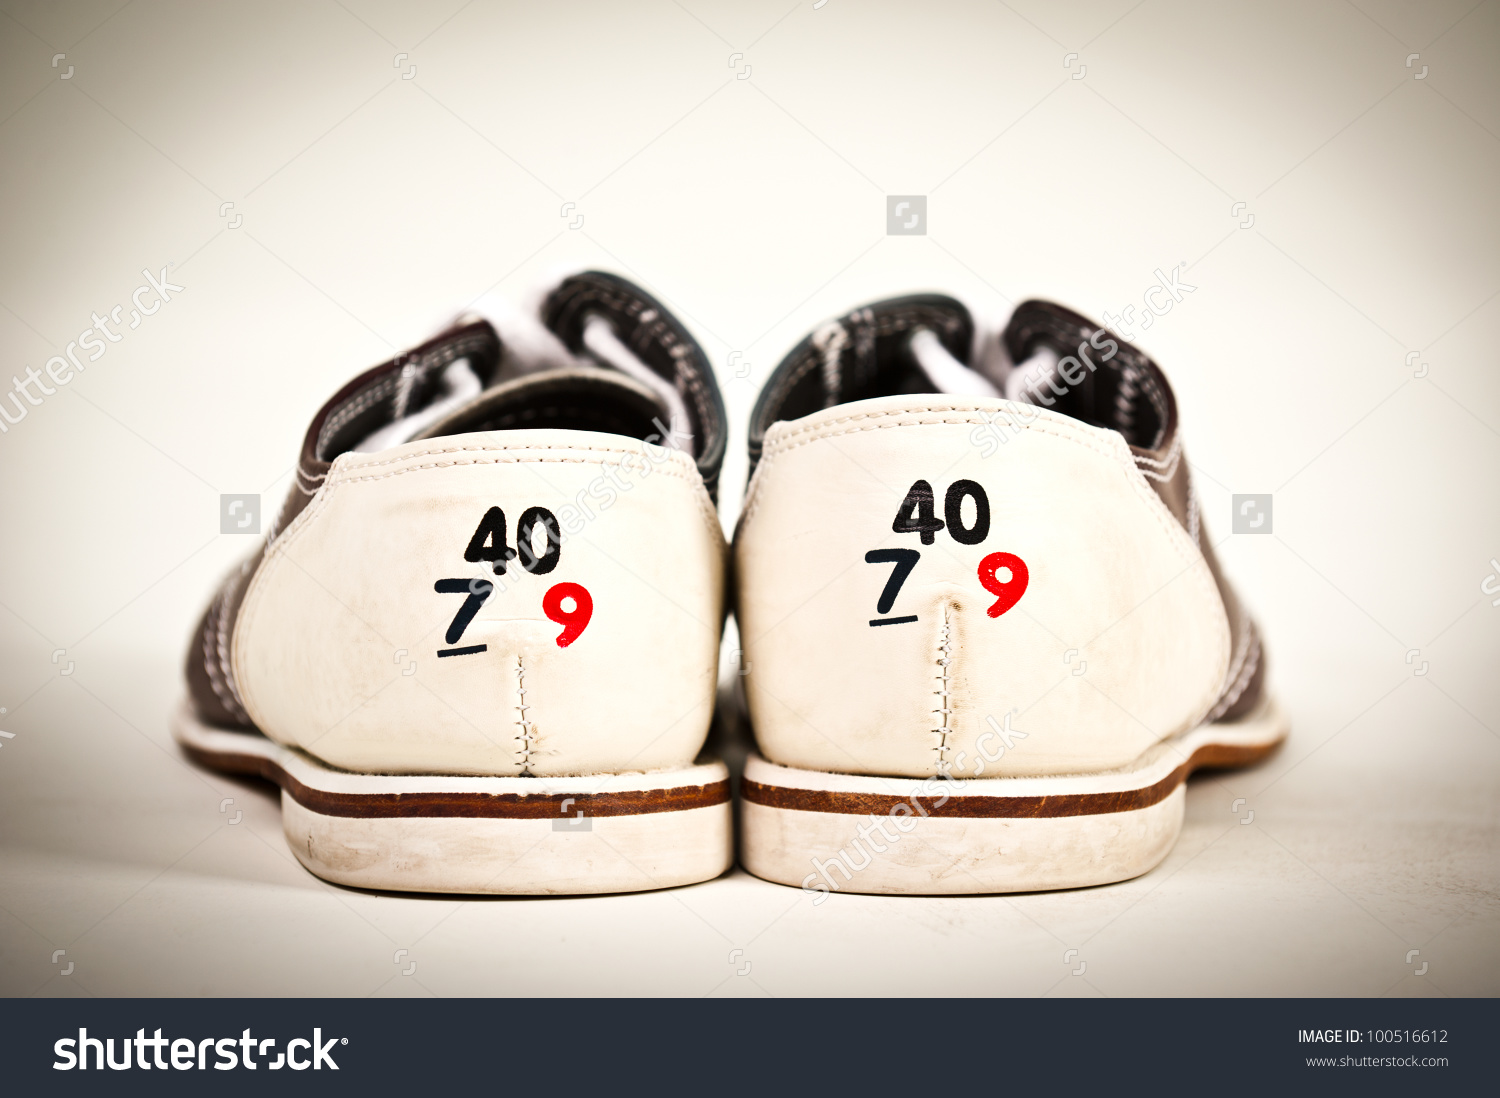 Shoe size clipart banner library Bowling Shoe Shoe Size Stock Photo 100516612 - Shutterstock banner library